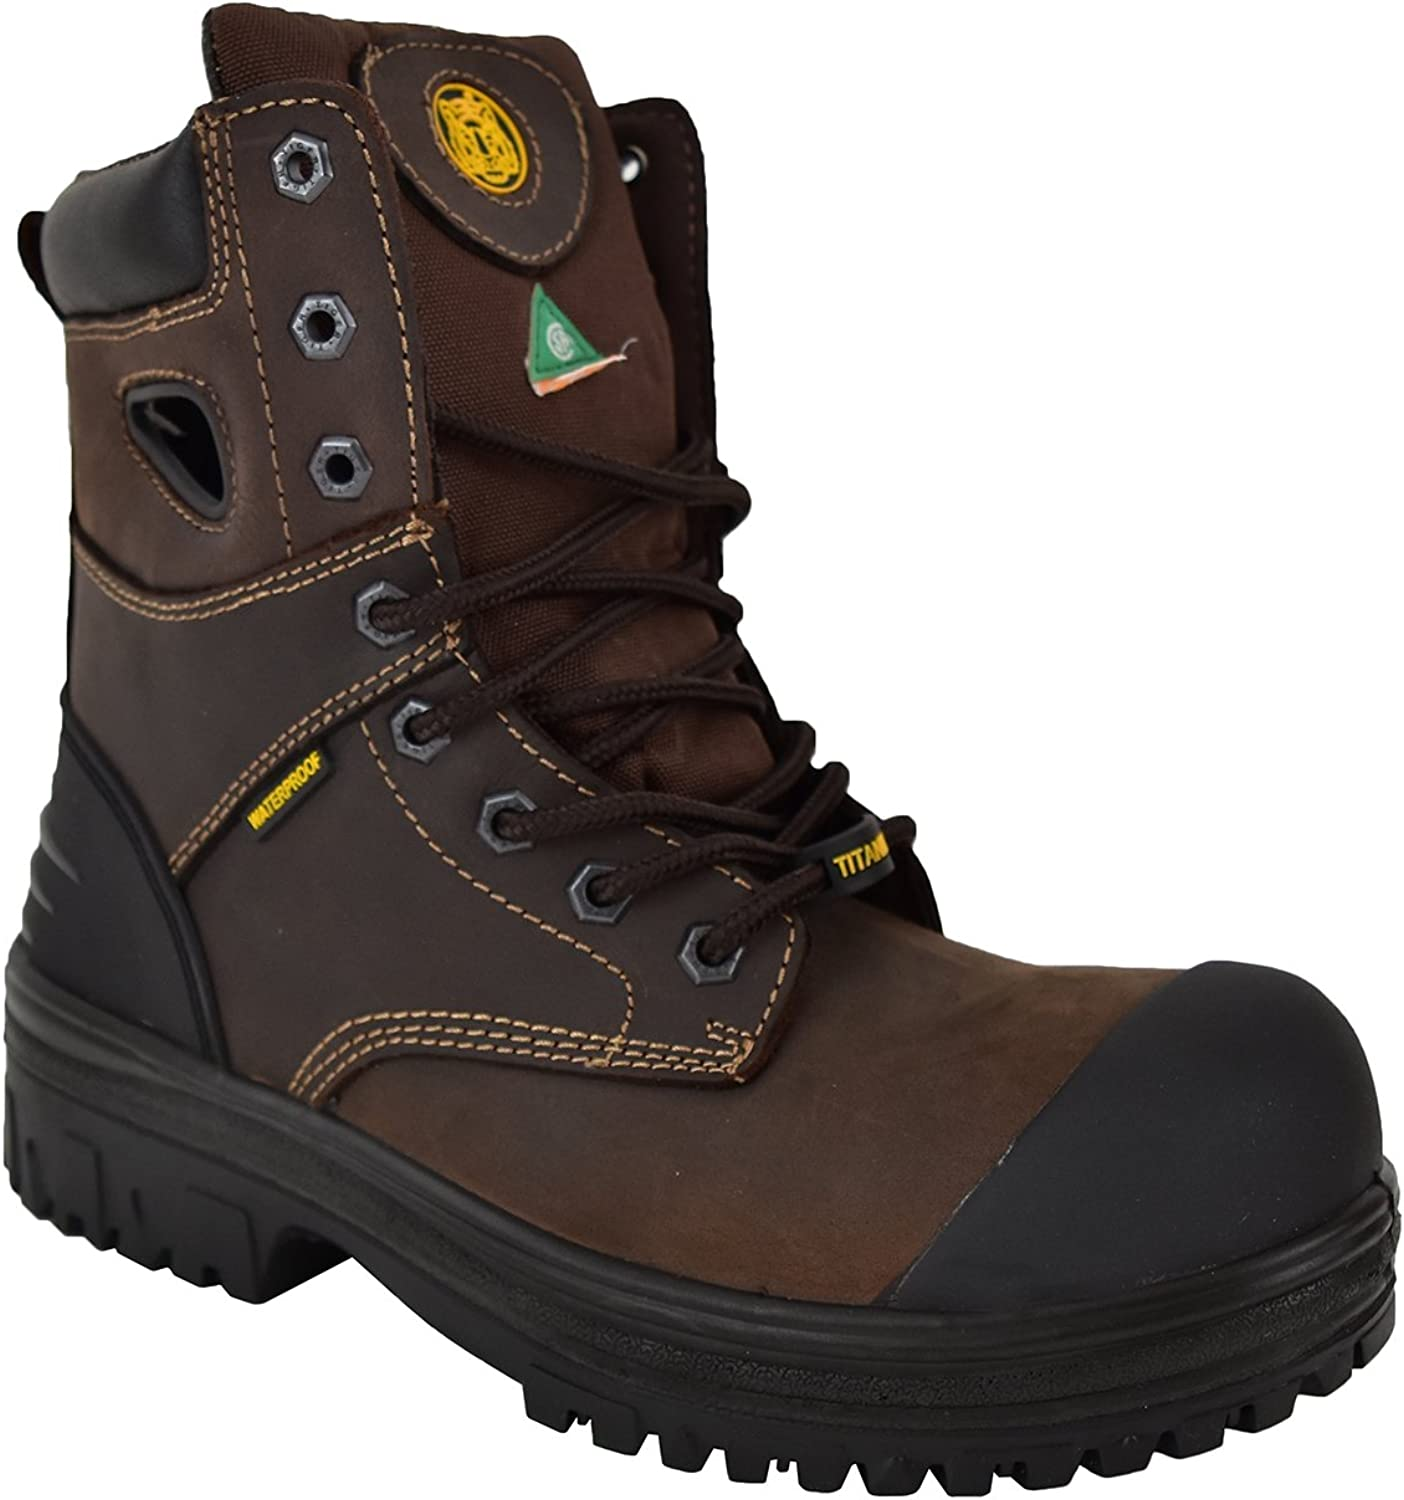 Tiger Safety CSA Men's Lightweight Titanium Toe-Cap Rubber Outsole Waterproof Leather Work Safety Boots - 6631